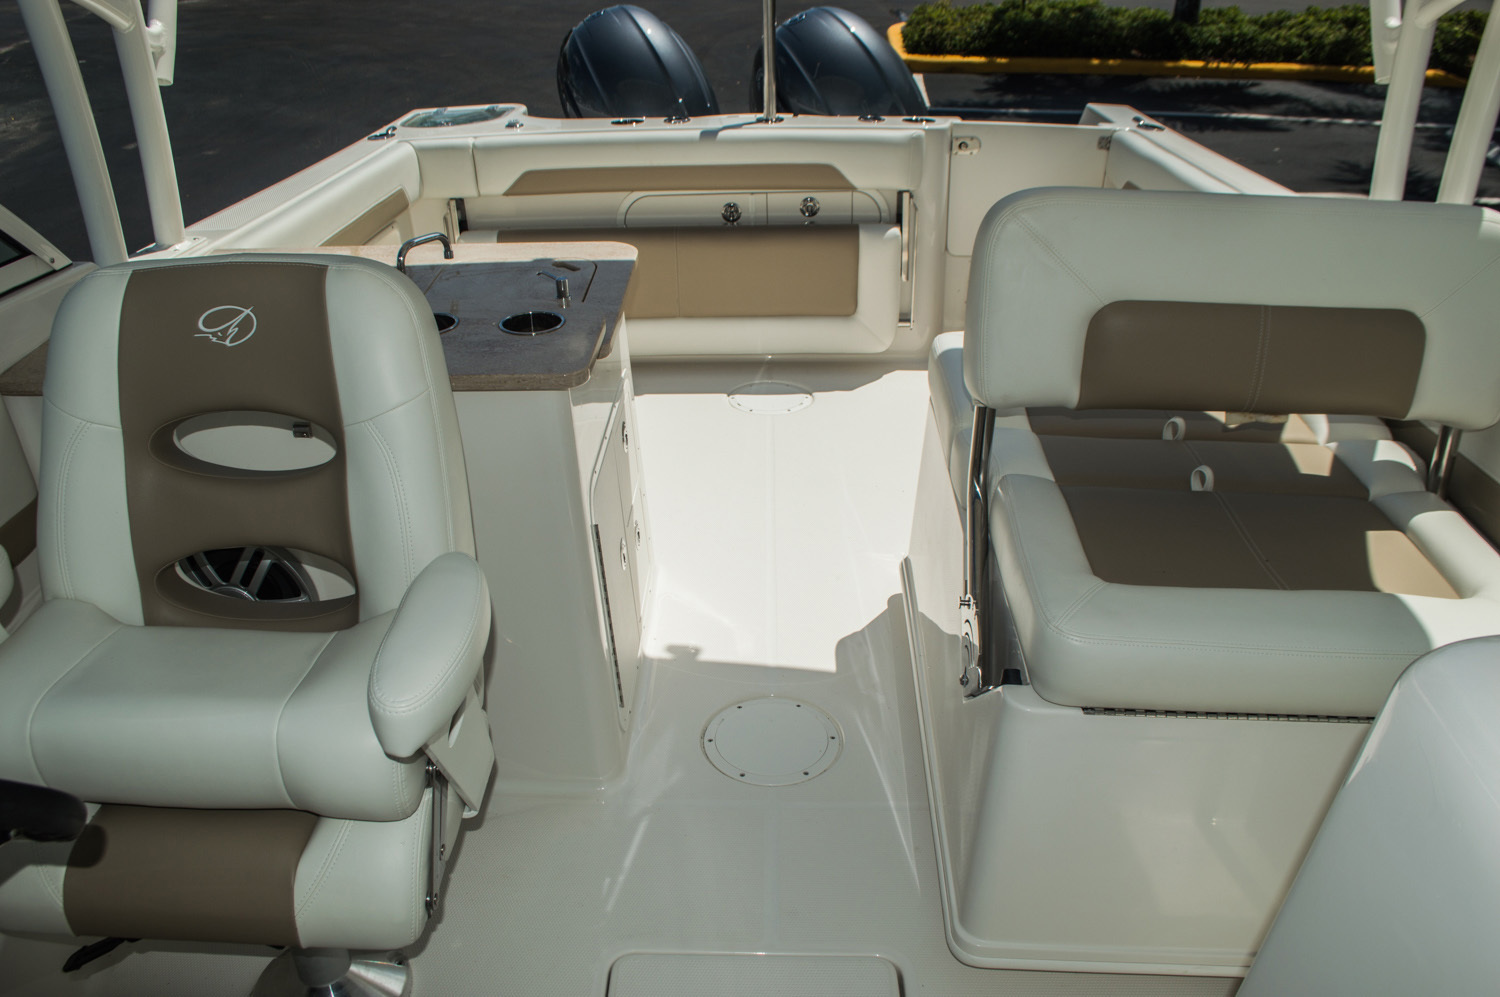 Thumbnail 40 for New 2016 Sailfish 275 Dual Console boat for sale in West Palm Beach, FL